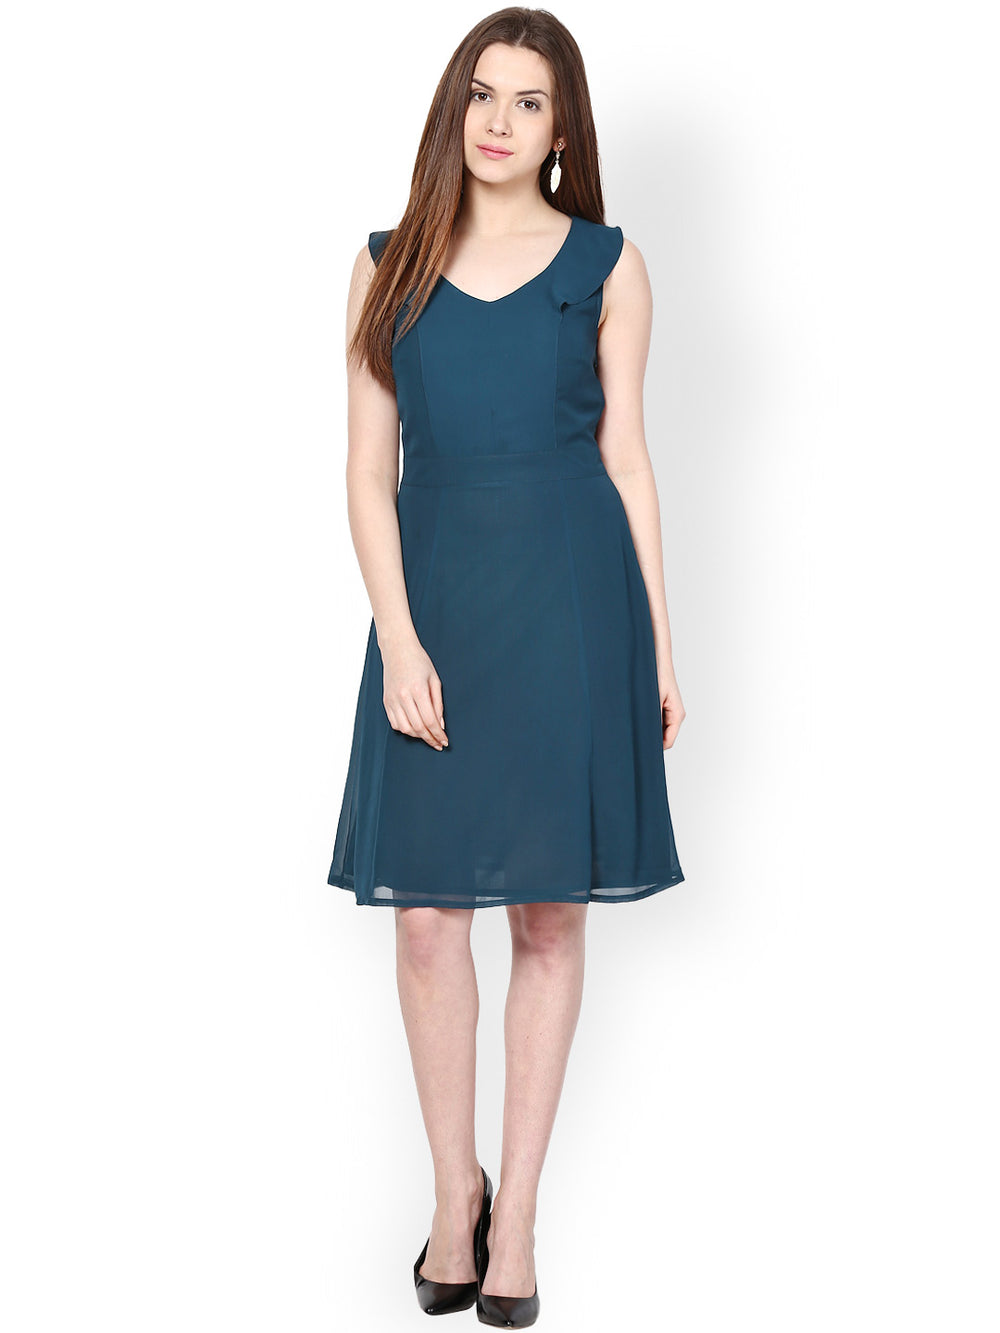 Besiva Dark Green Fit & Flare Dress